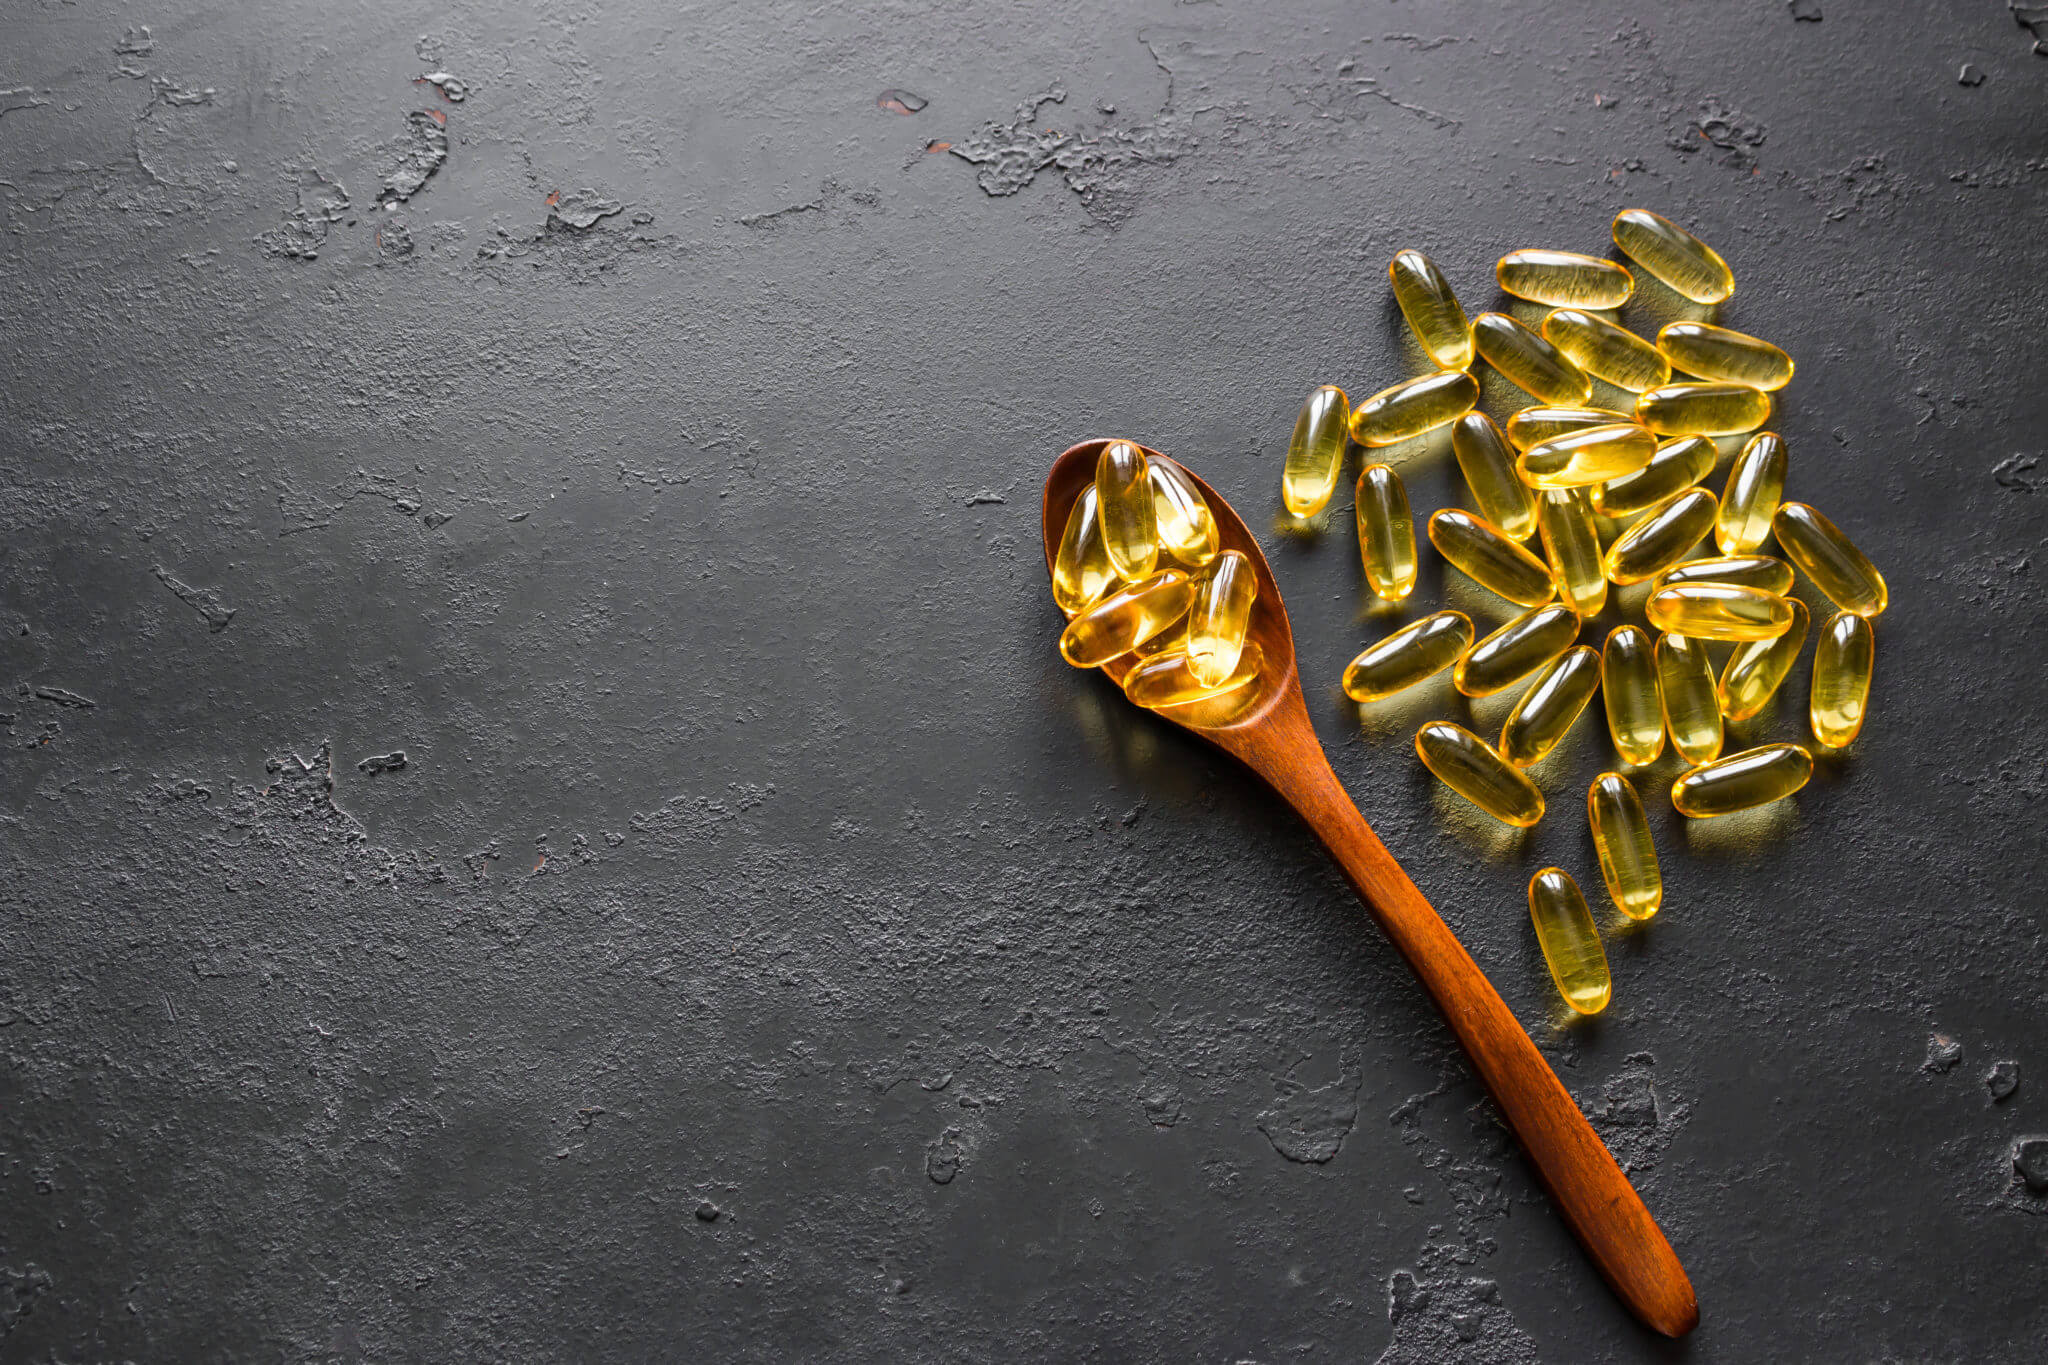 Wooden Spoon And Fish Oil Capsules On A Black Background With Sp